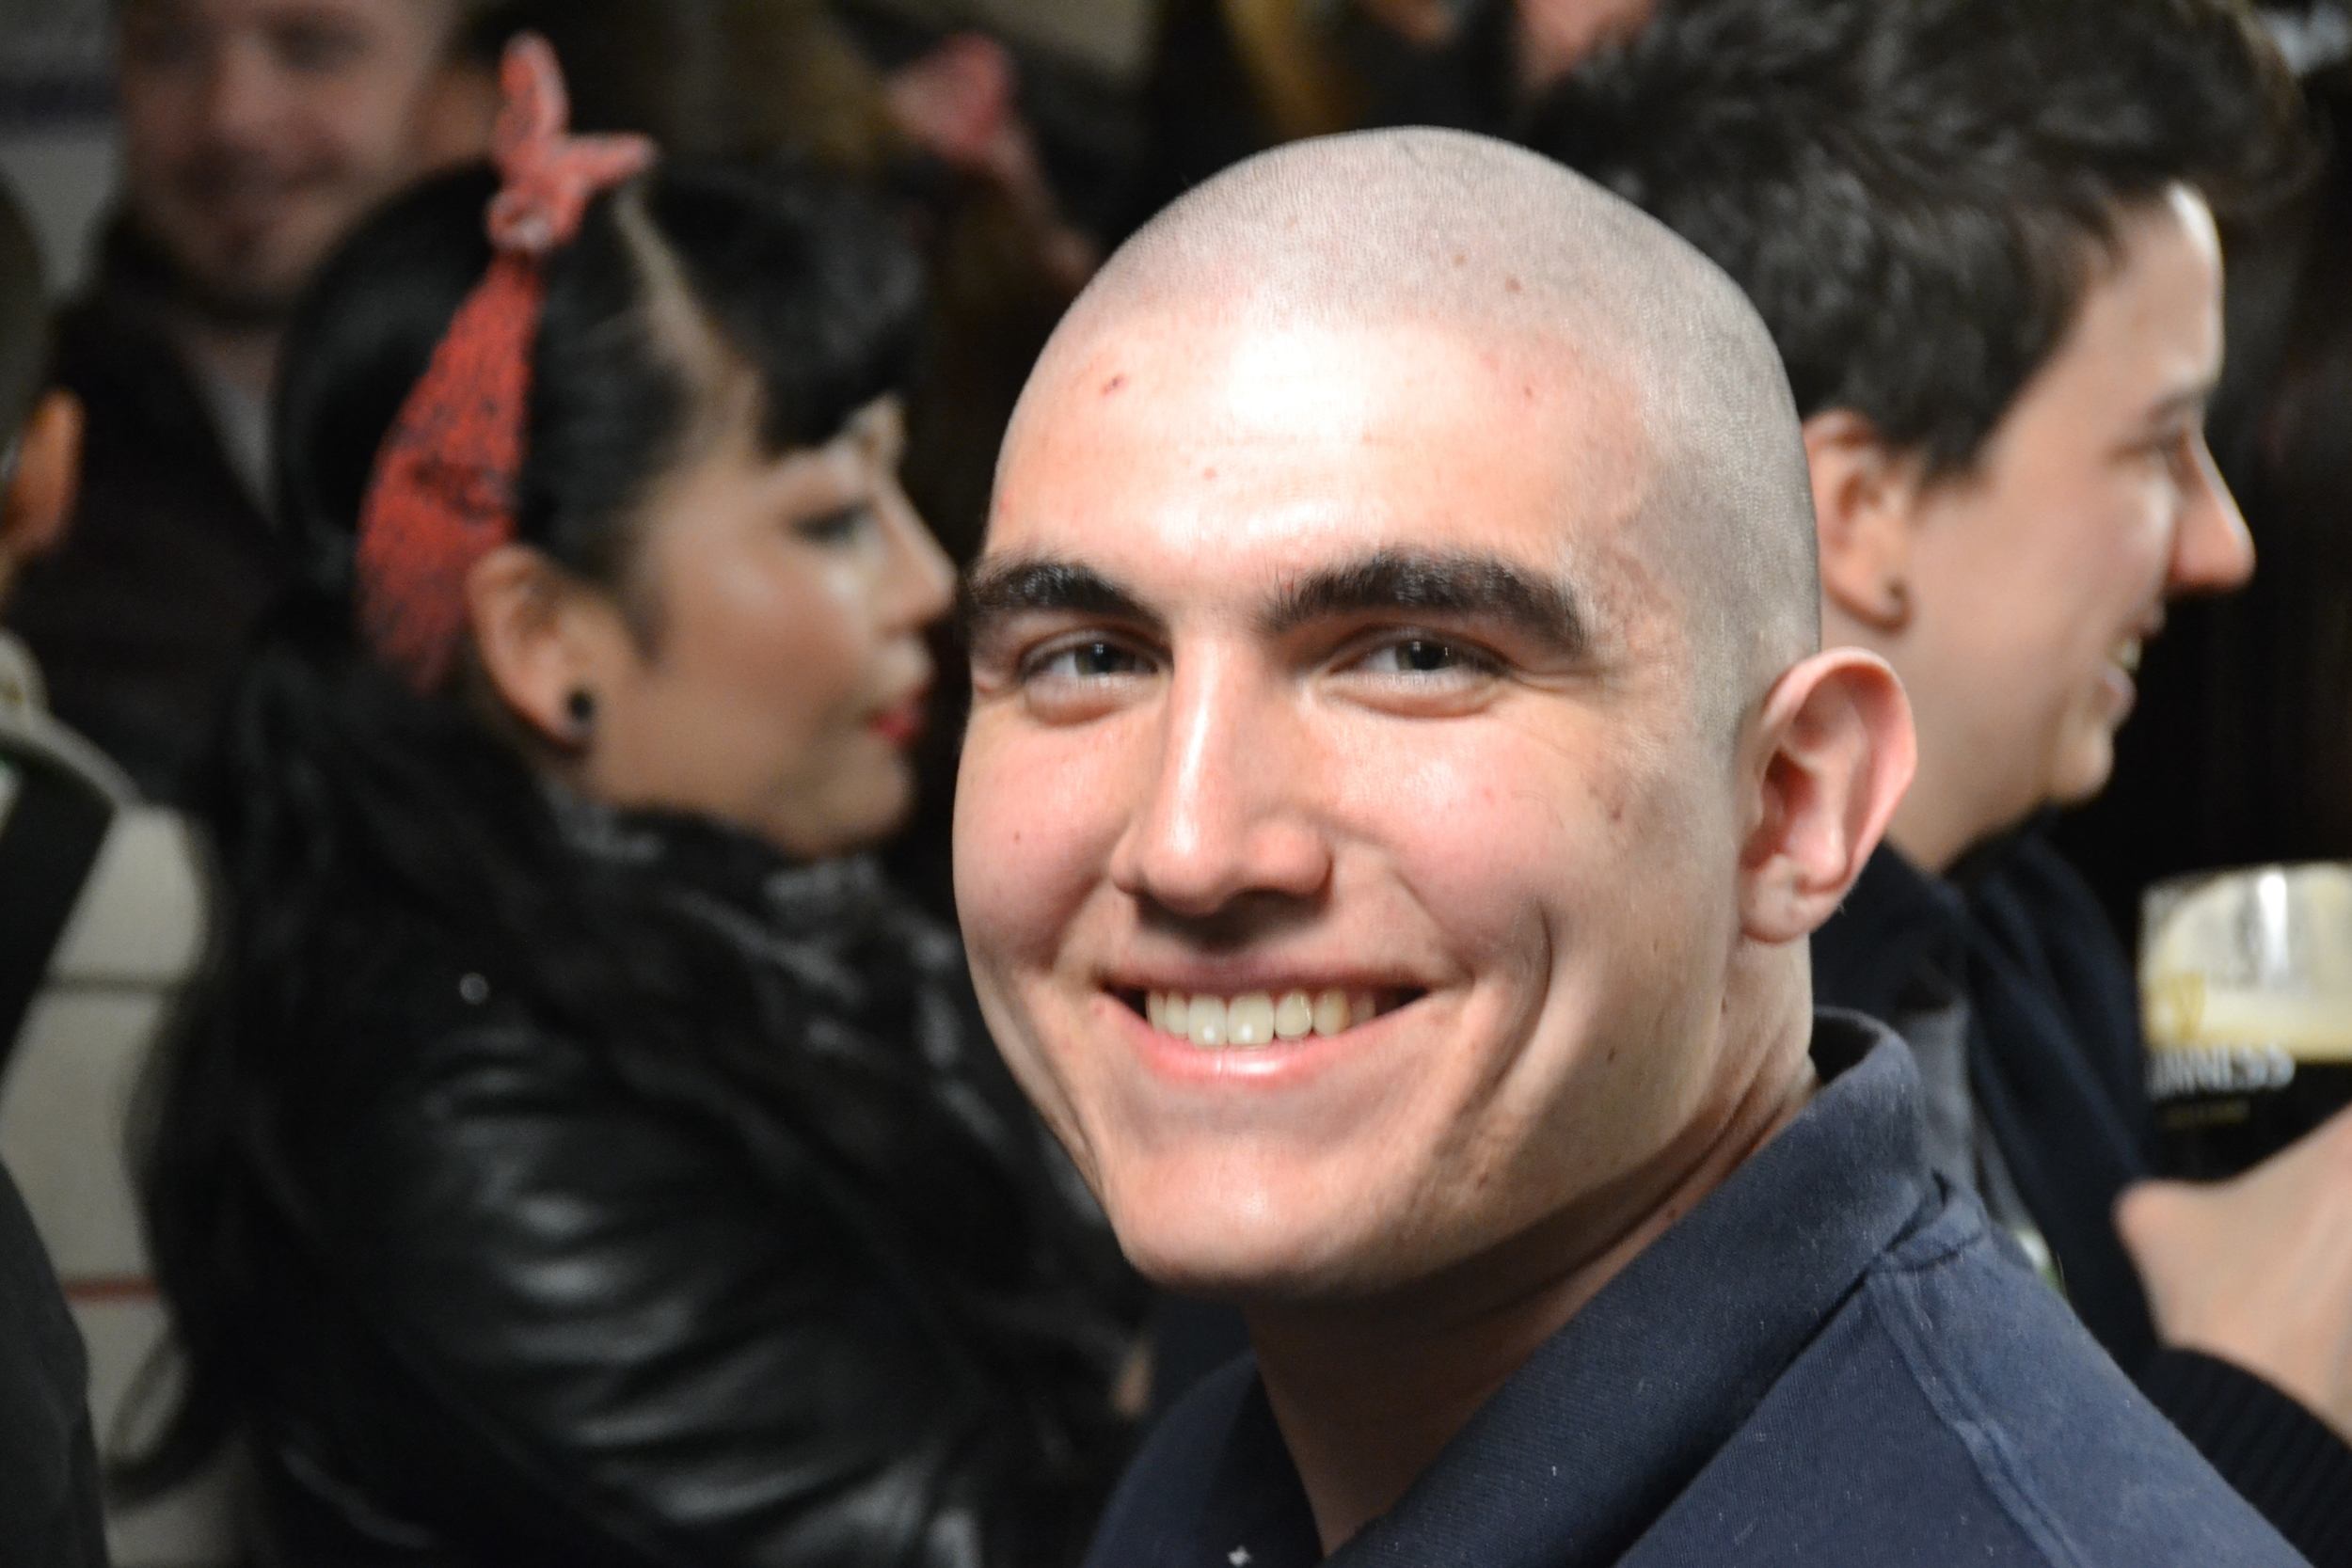 Brother Jon Cordova with a freshly shaven head